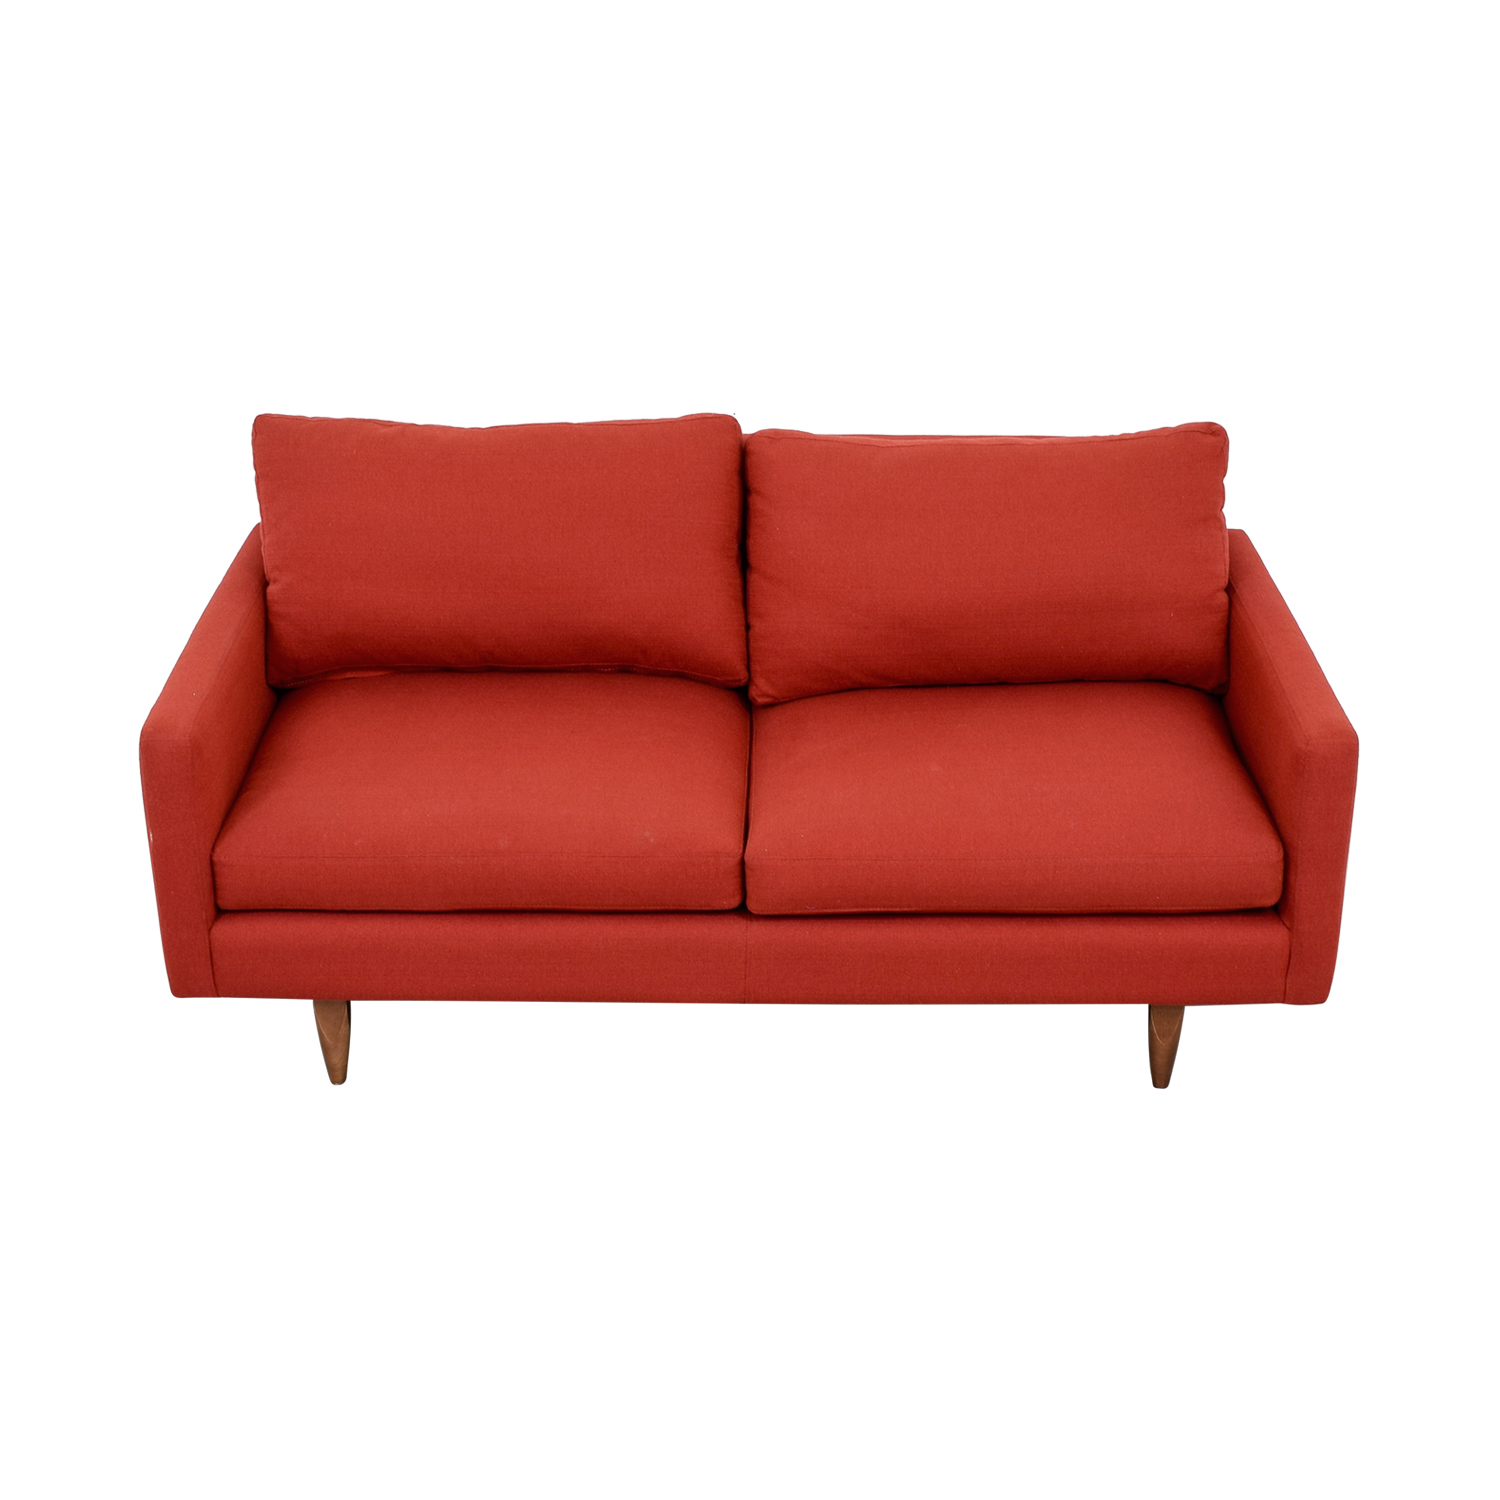 Room & Board Room & Board Two Seater Jasper Sofa price